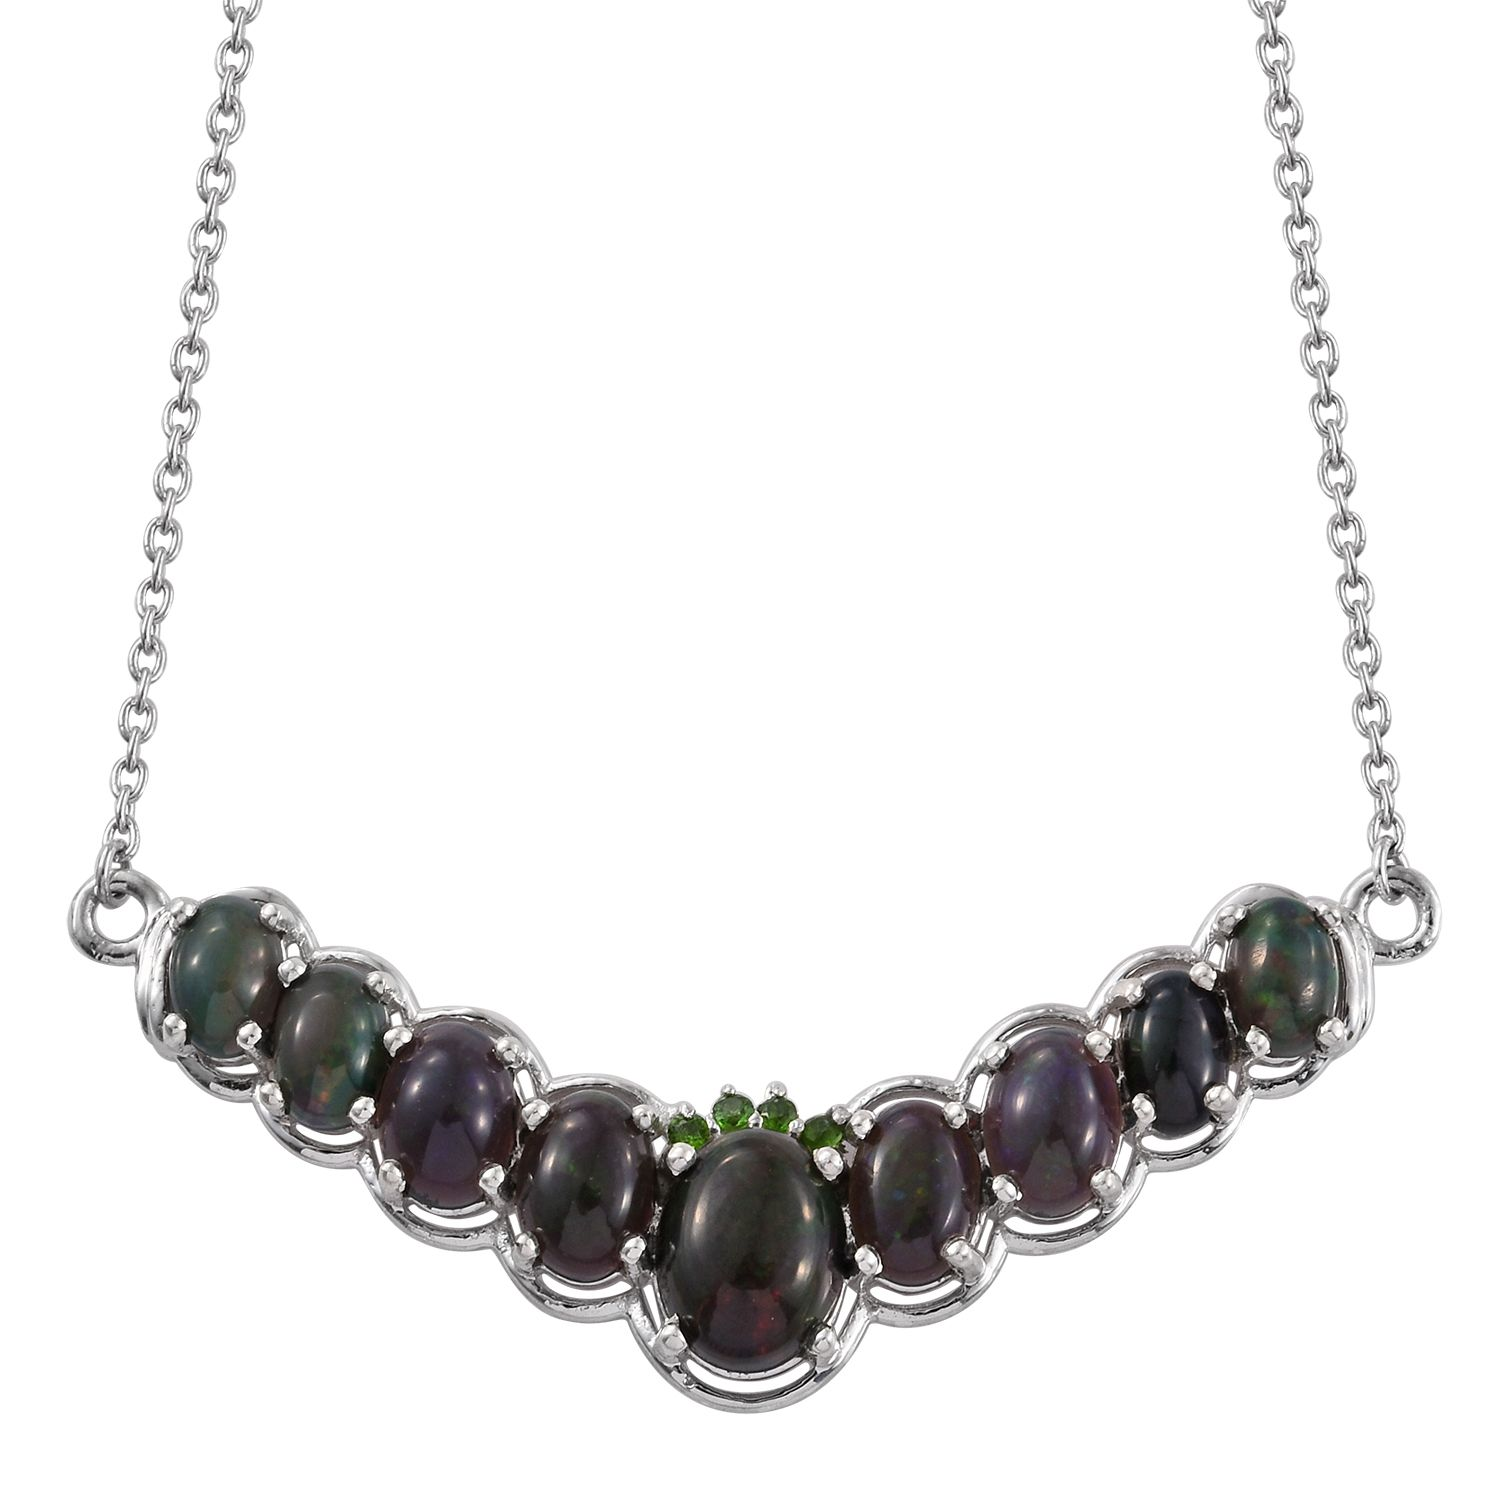 Russian diopside platinum over sterling silver necklace 18 in 4160 image is loading russian diopside platinum over sterling silver necklace 18 aloadofball Images